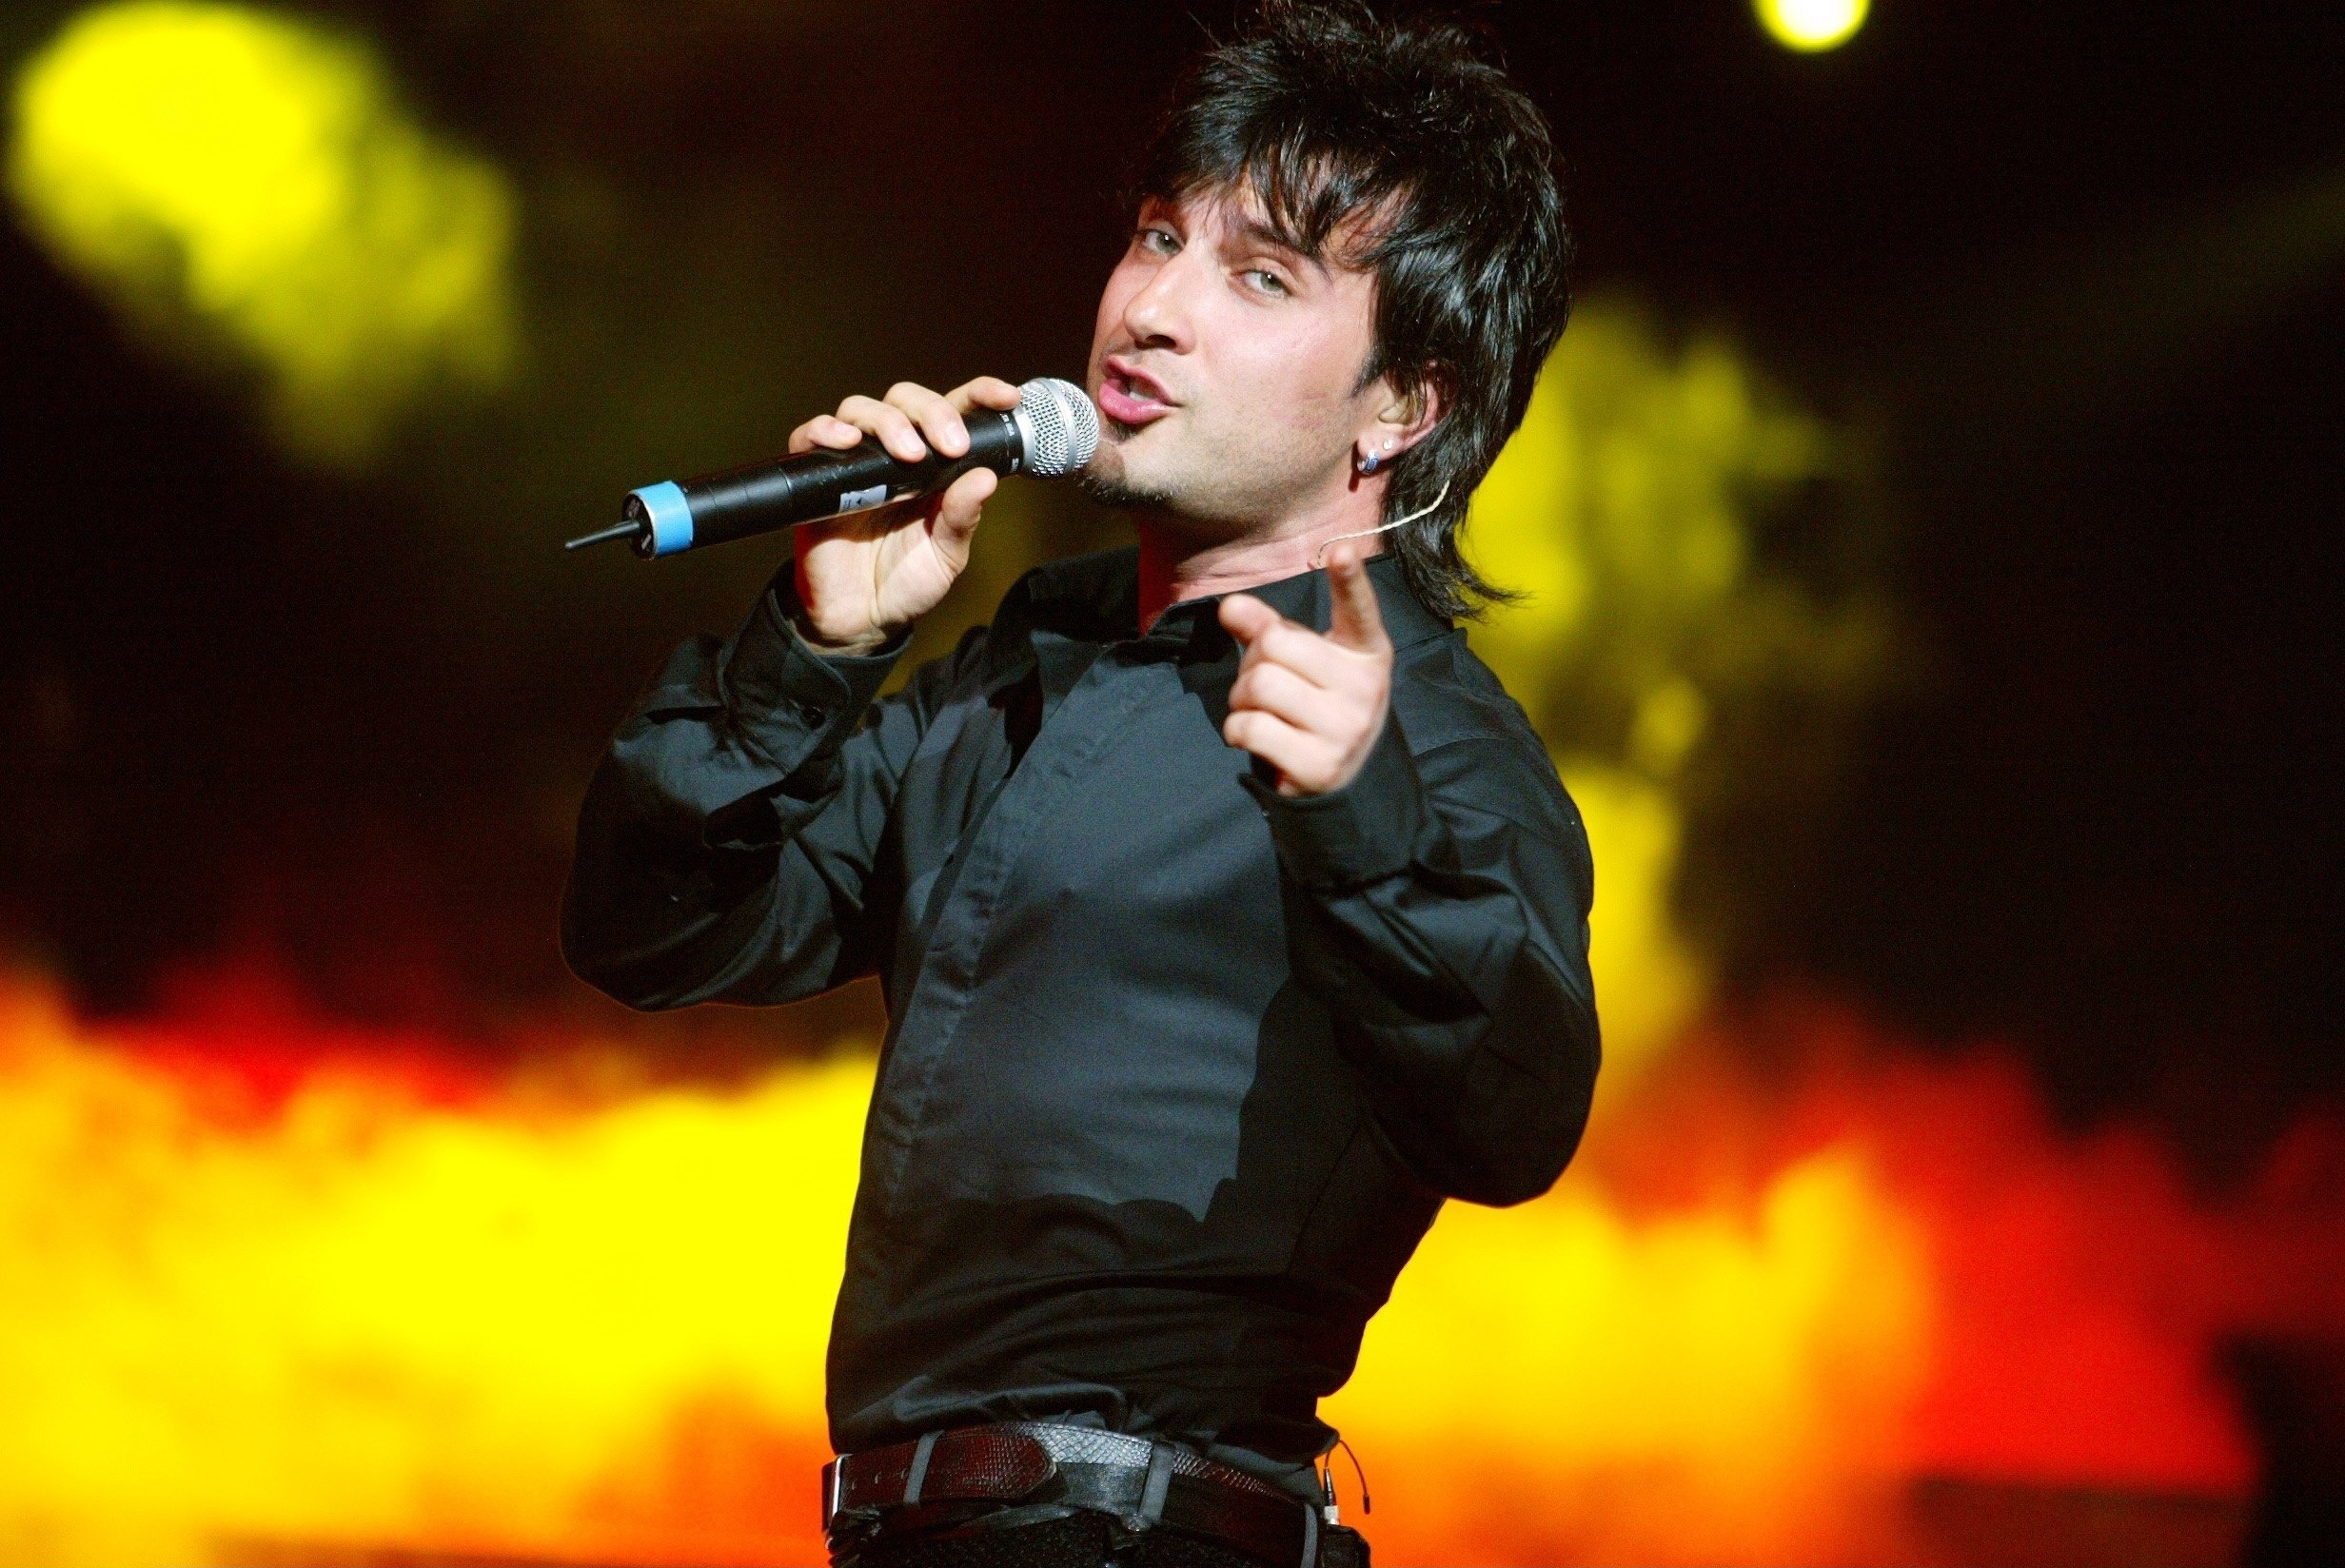 Turkish pop singer Tarkan performs at Lanxess Arena, Germany, July 5, 2004. (Getty Images)